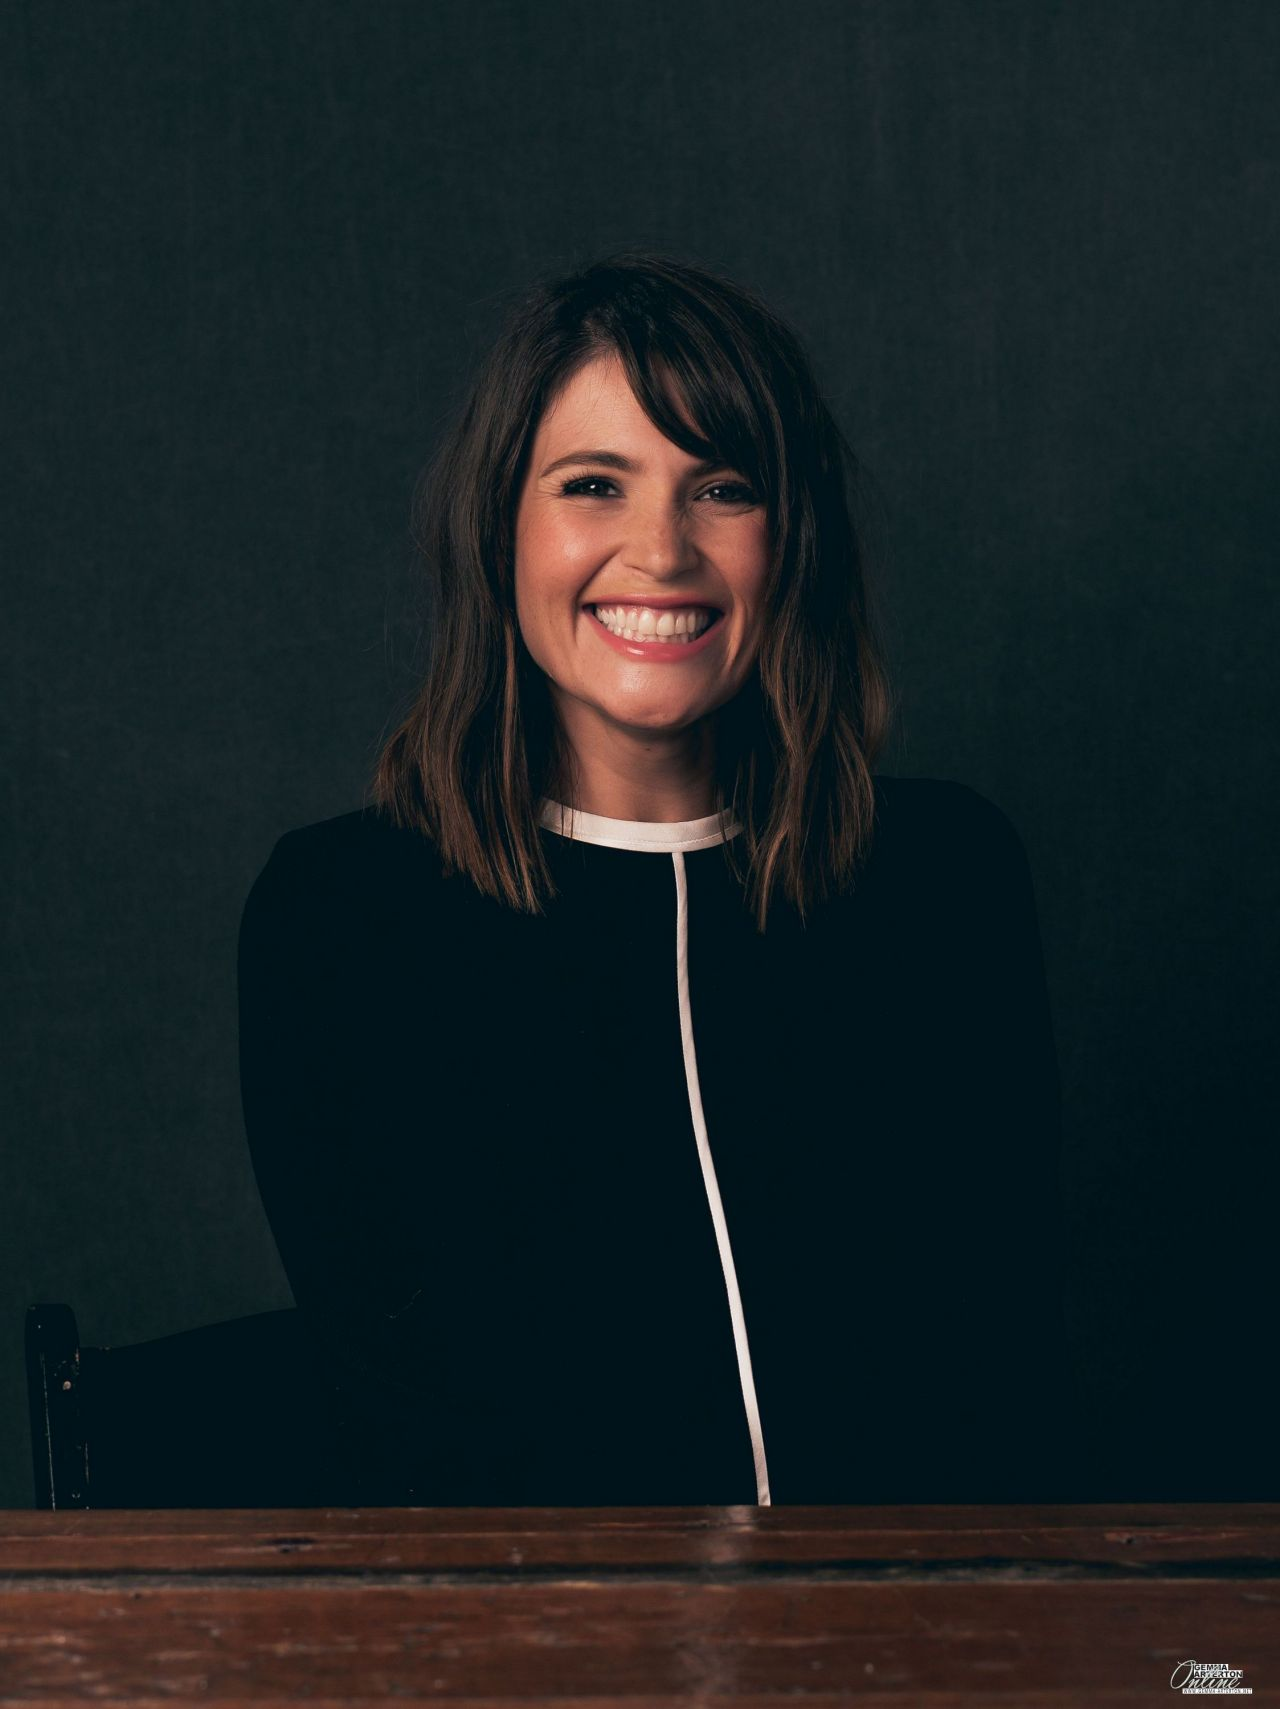 Gemma Arterton Their Finest Tiff 2016 Portraits